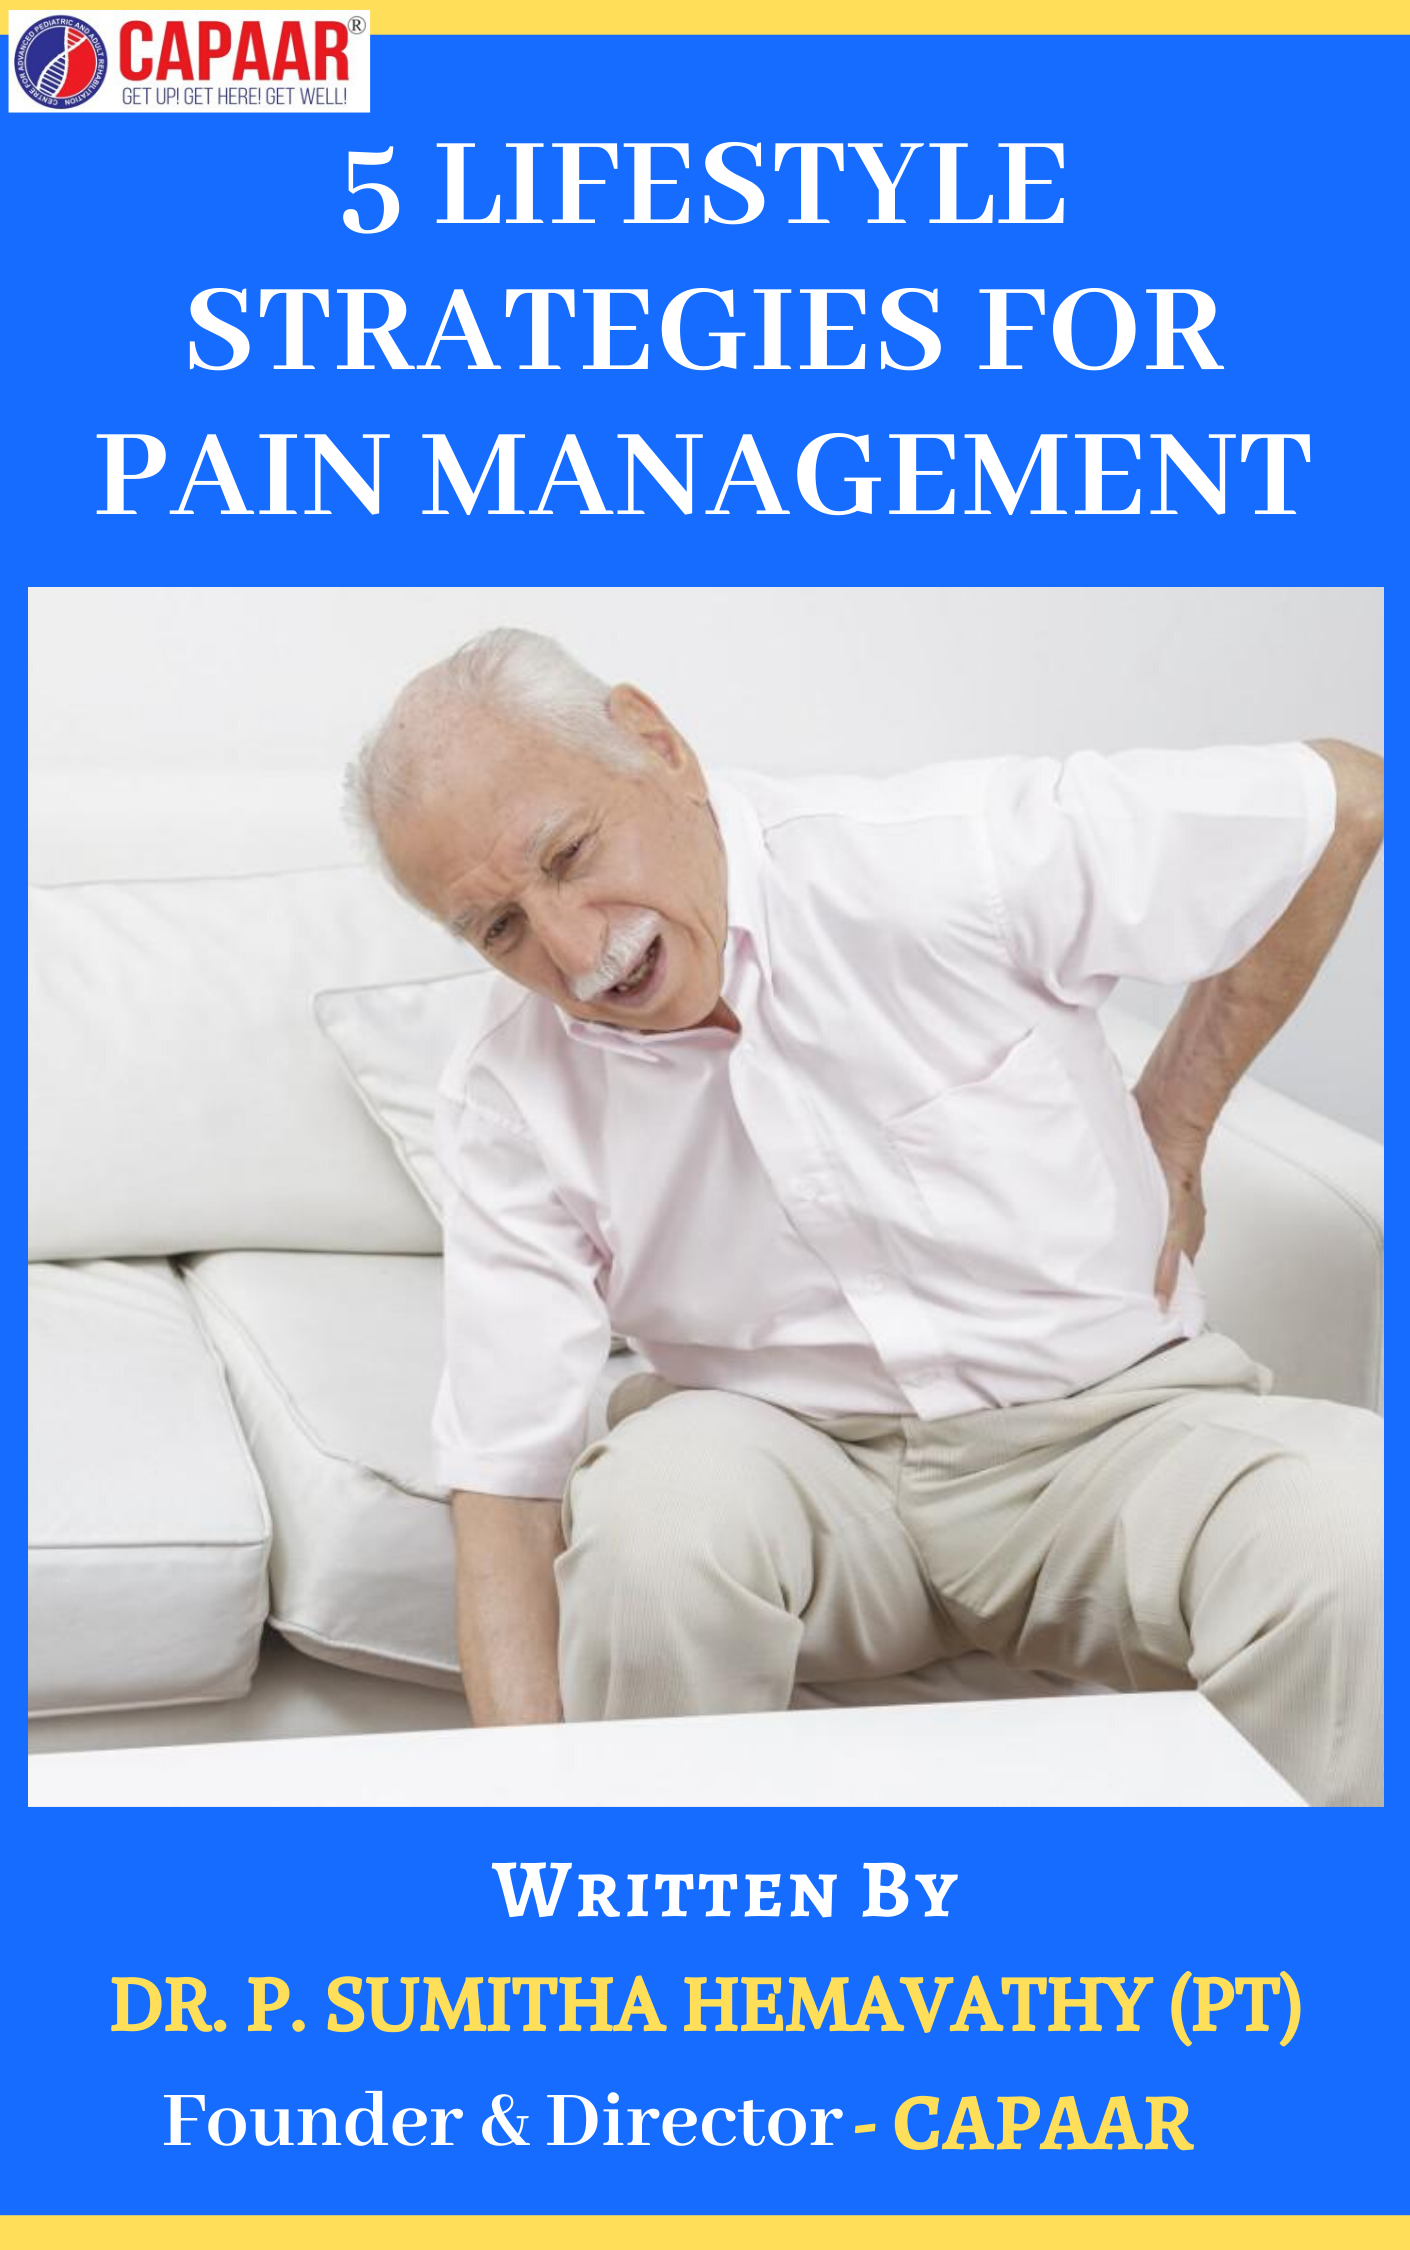 5 Lifestyle Strategies for Pain Management